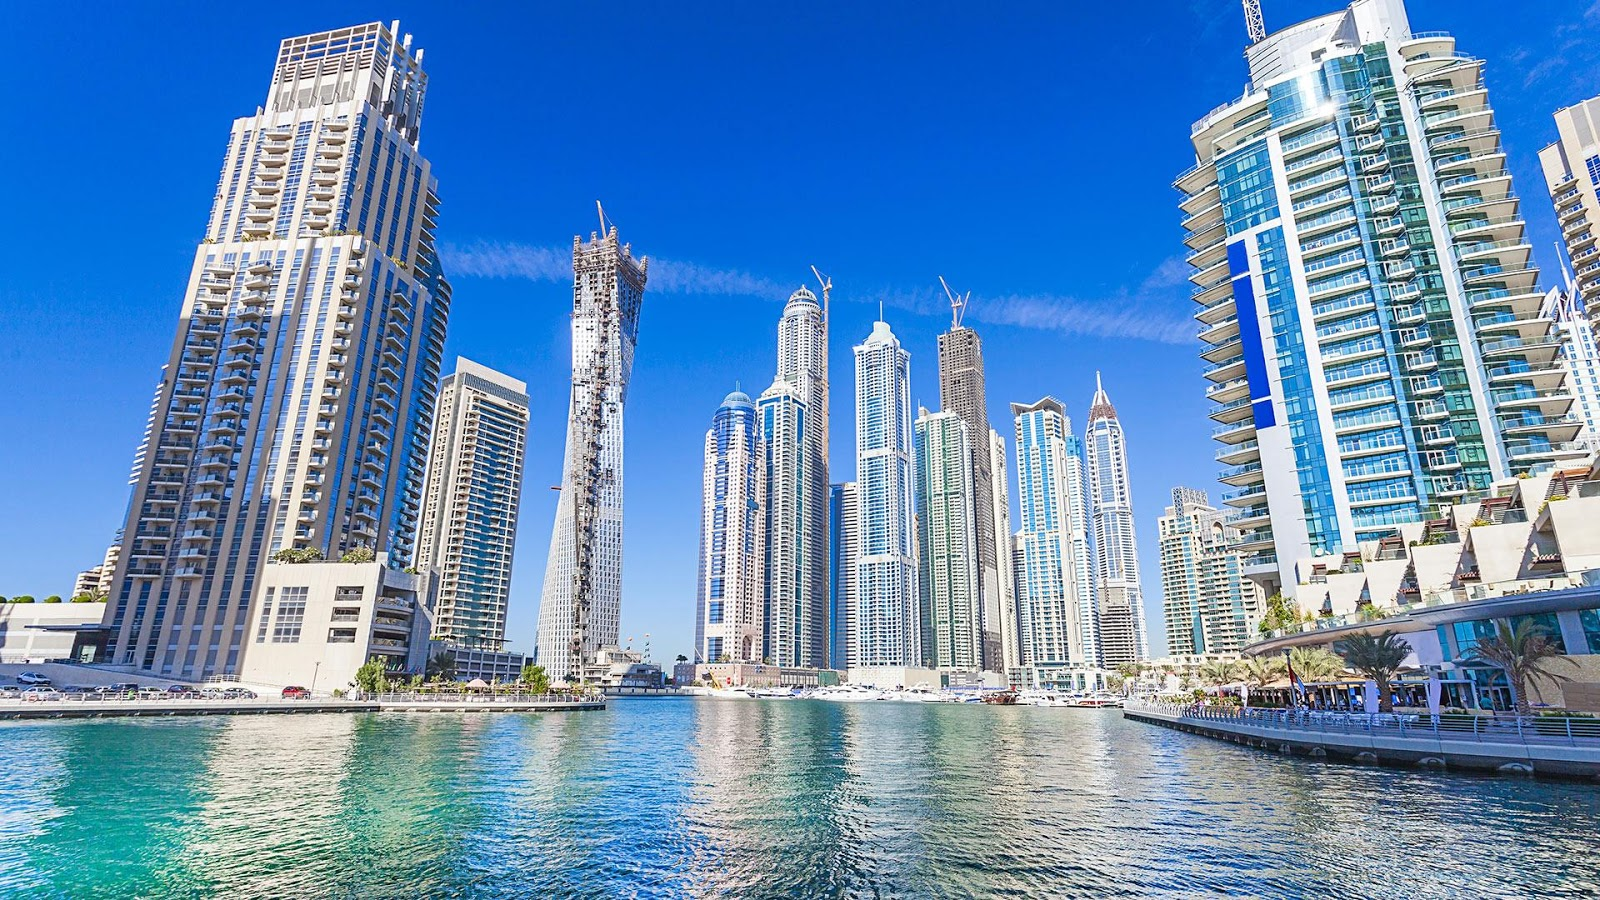 Dubai live hintergrund android apps auf google play for 3d wallpaper for home in dubai